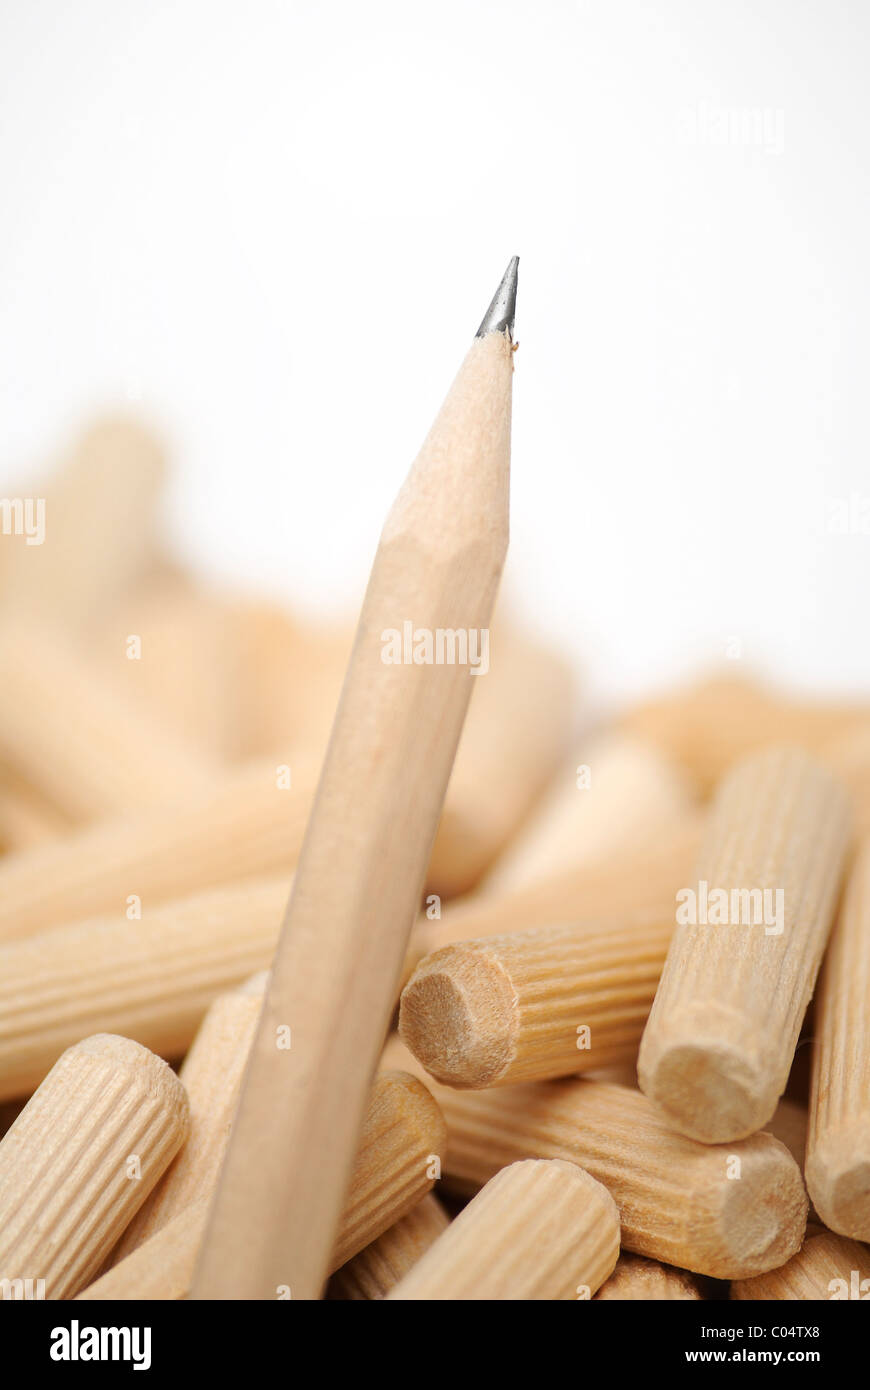 Wooden, sharp pencil with dowels in background - Stock Image